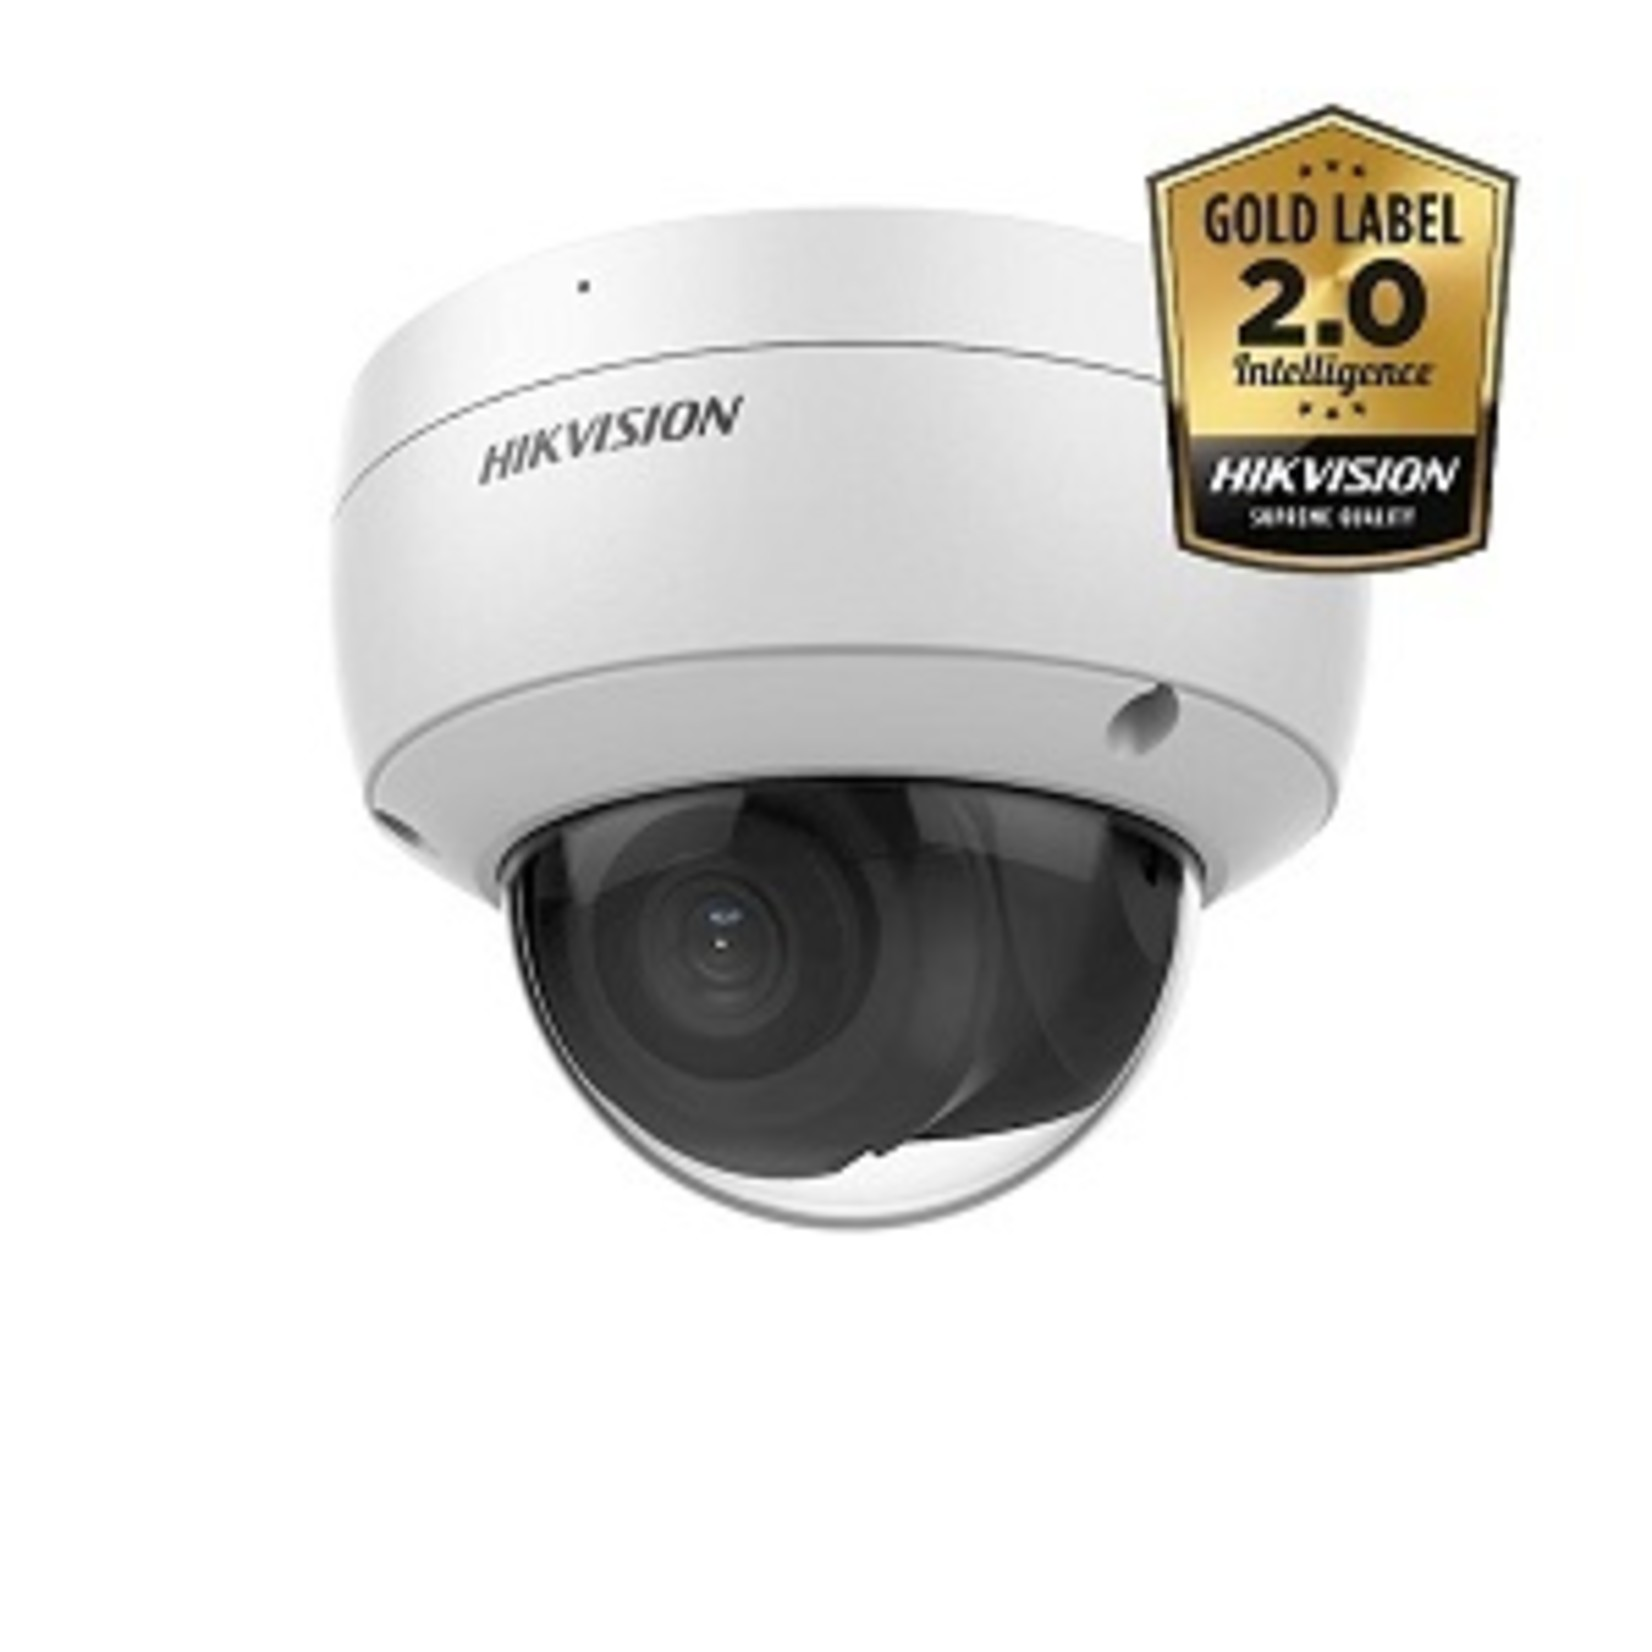 Hikvision DS-2CD2146G2-I, 4MP, 4mm, 30m IR, WDR, Ultra Low Light